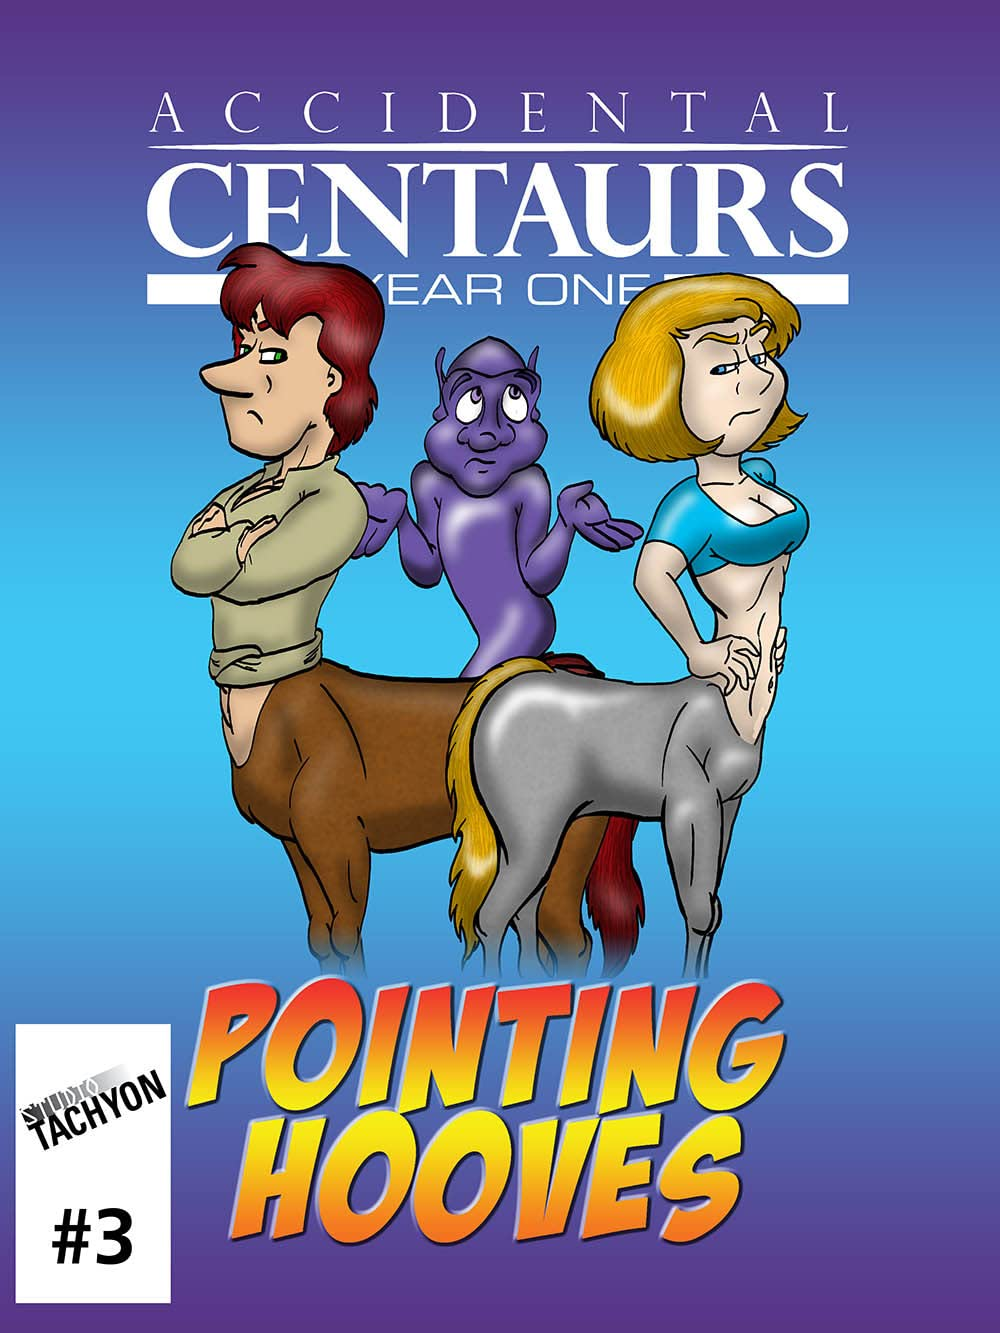 Accidental Centaurs #3